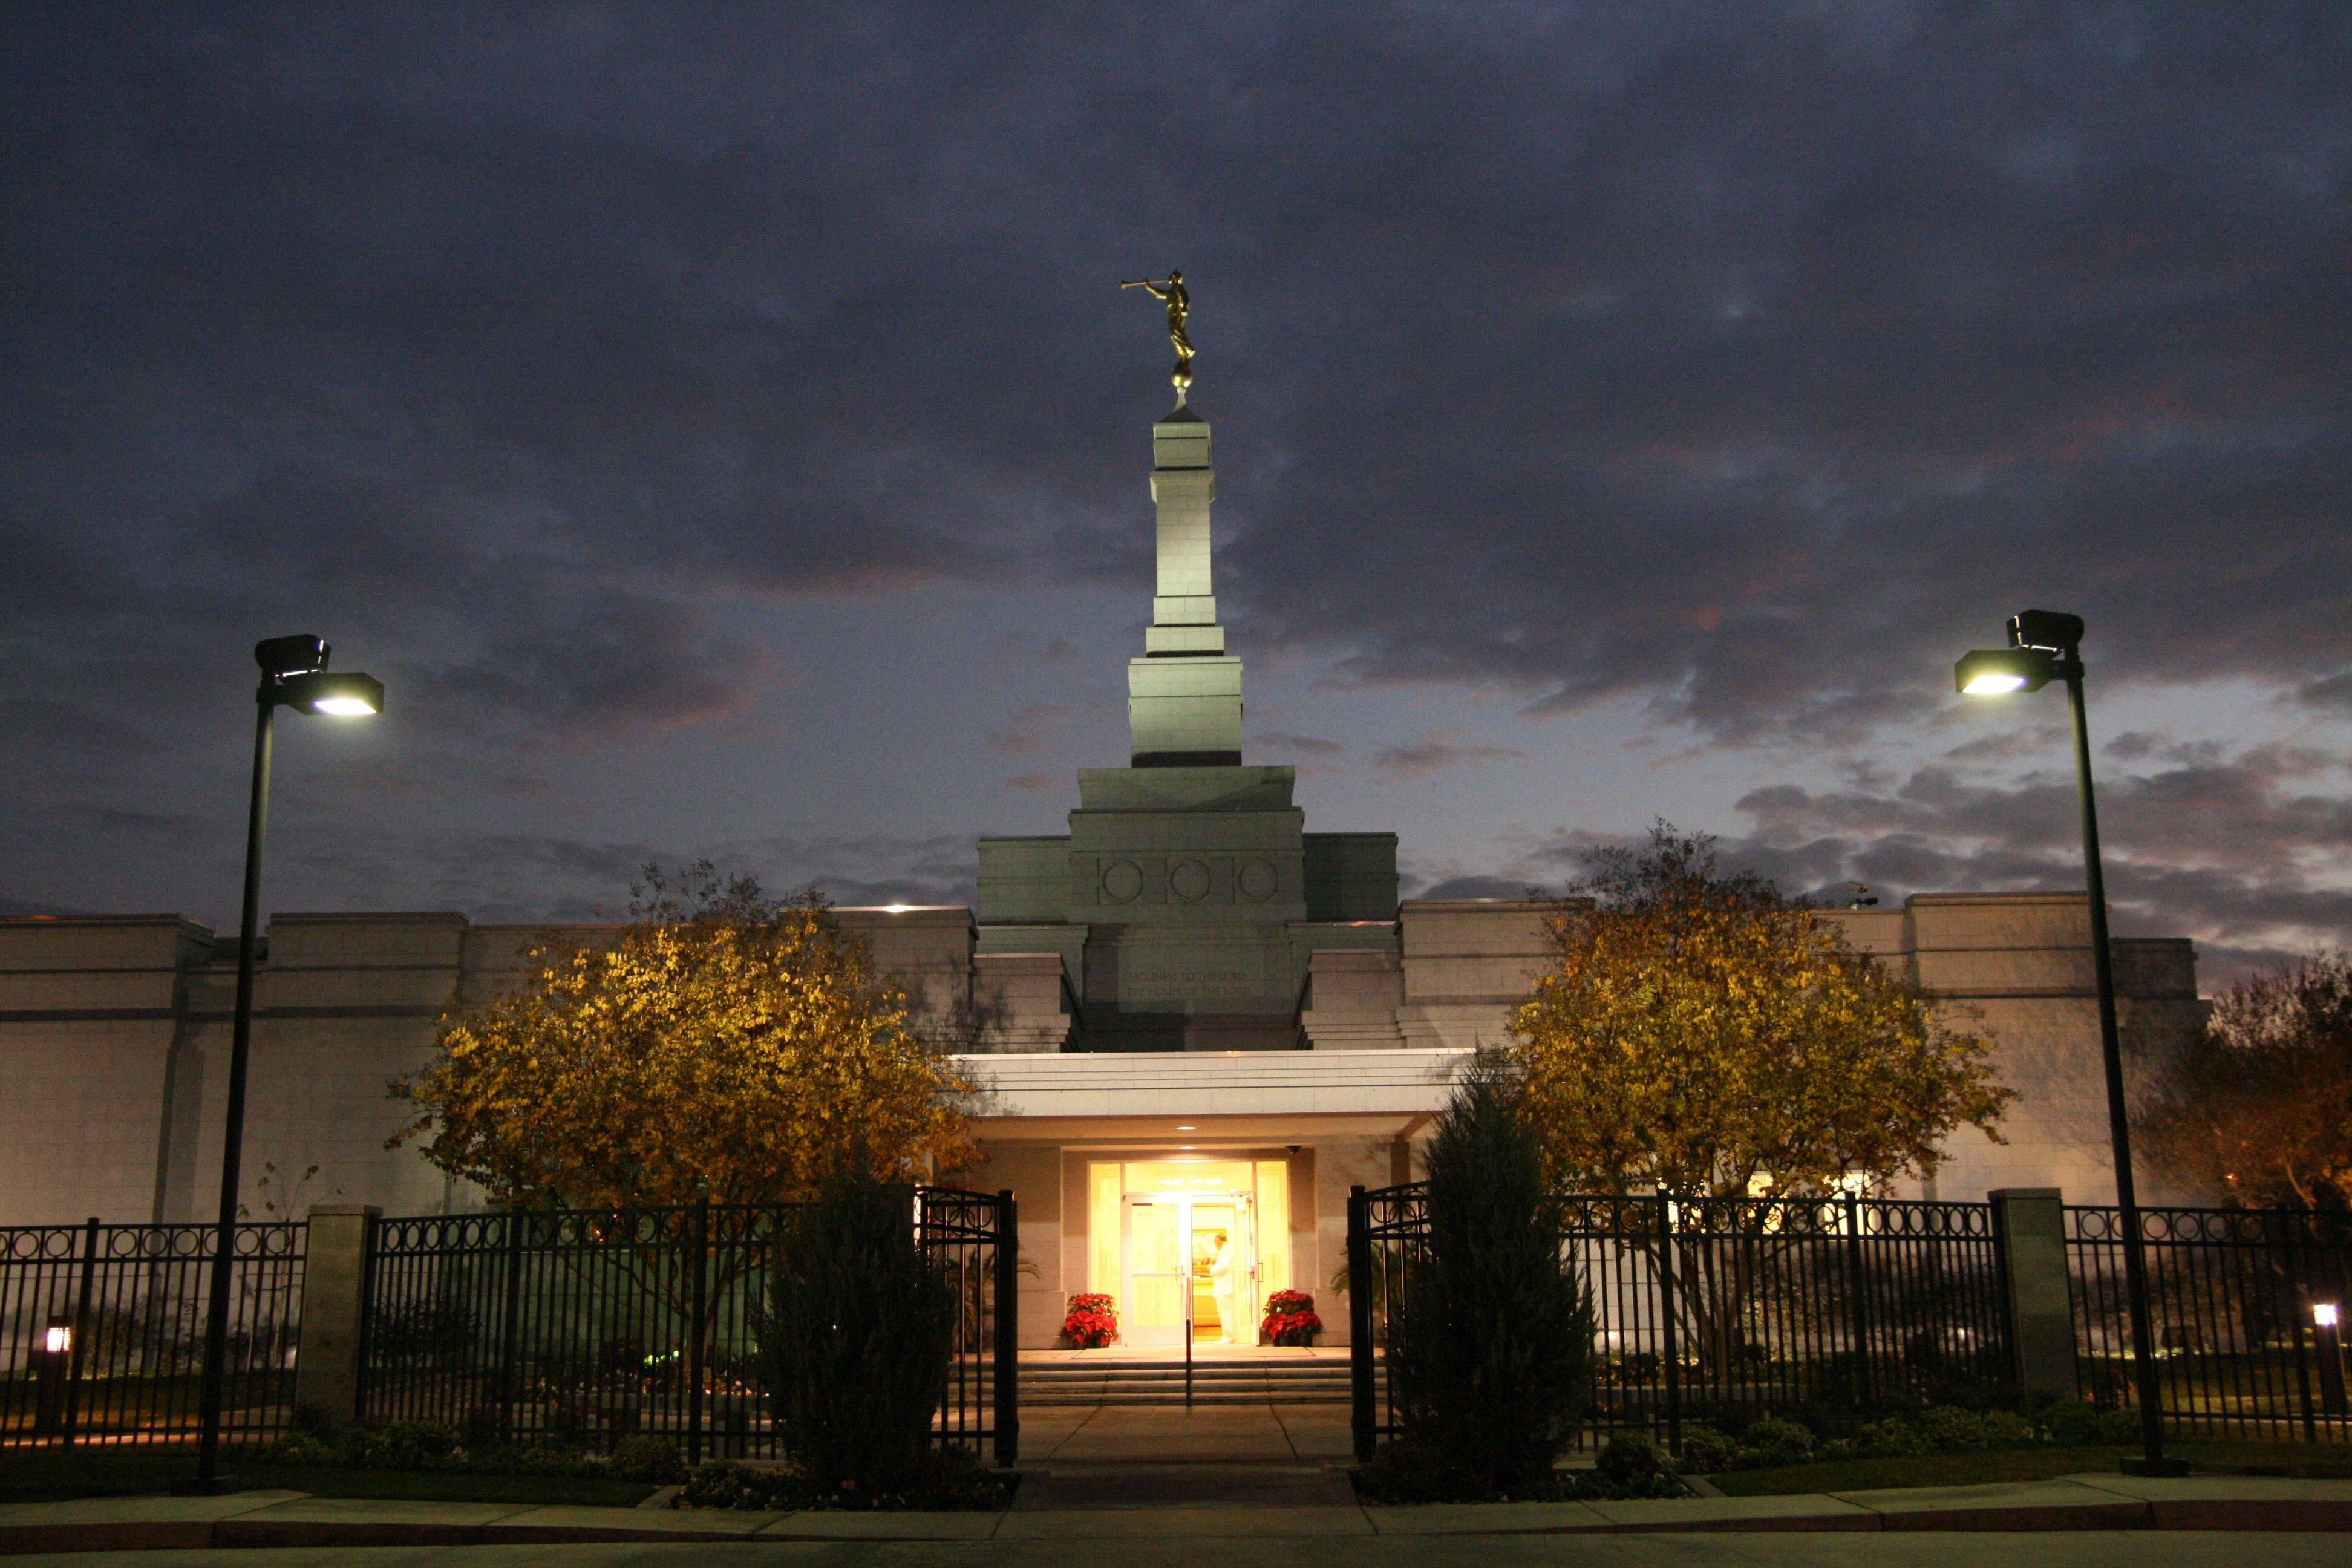 An exterior view of the Fresno California Temple at night.